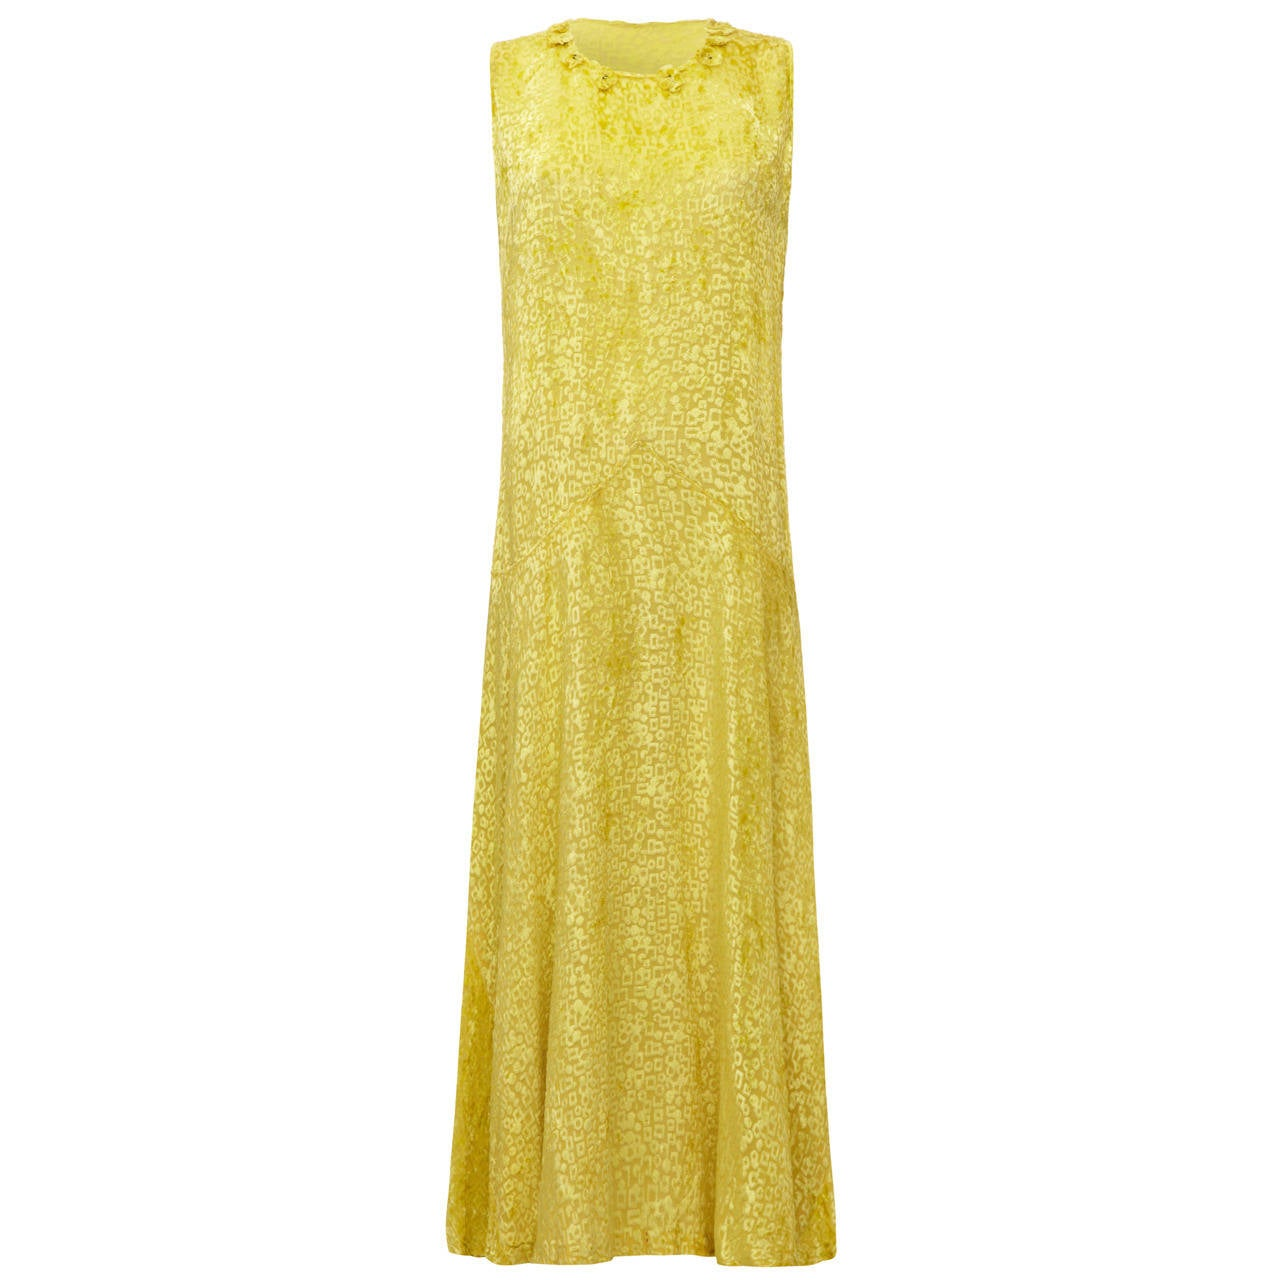 Stunning 1920s Yellow Silk Burn Out Velvet Flapper Dress